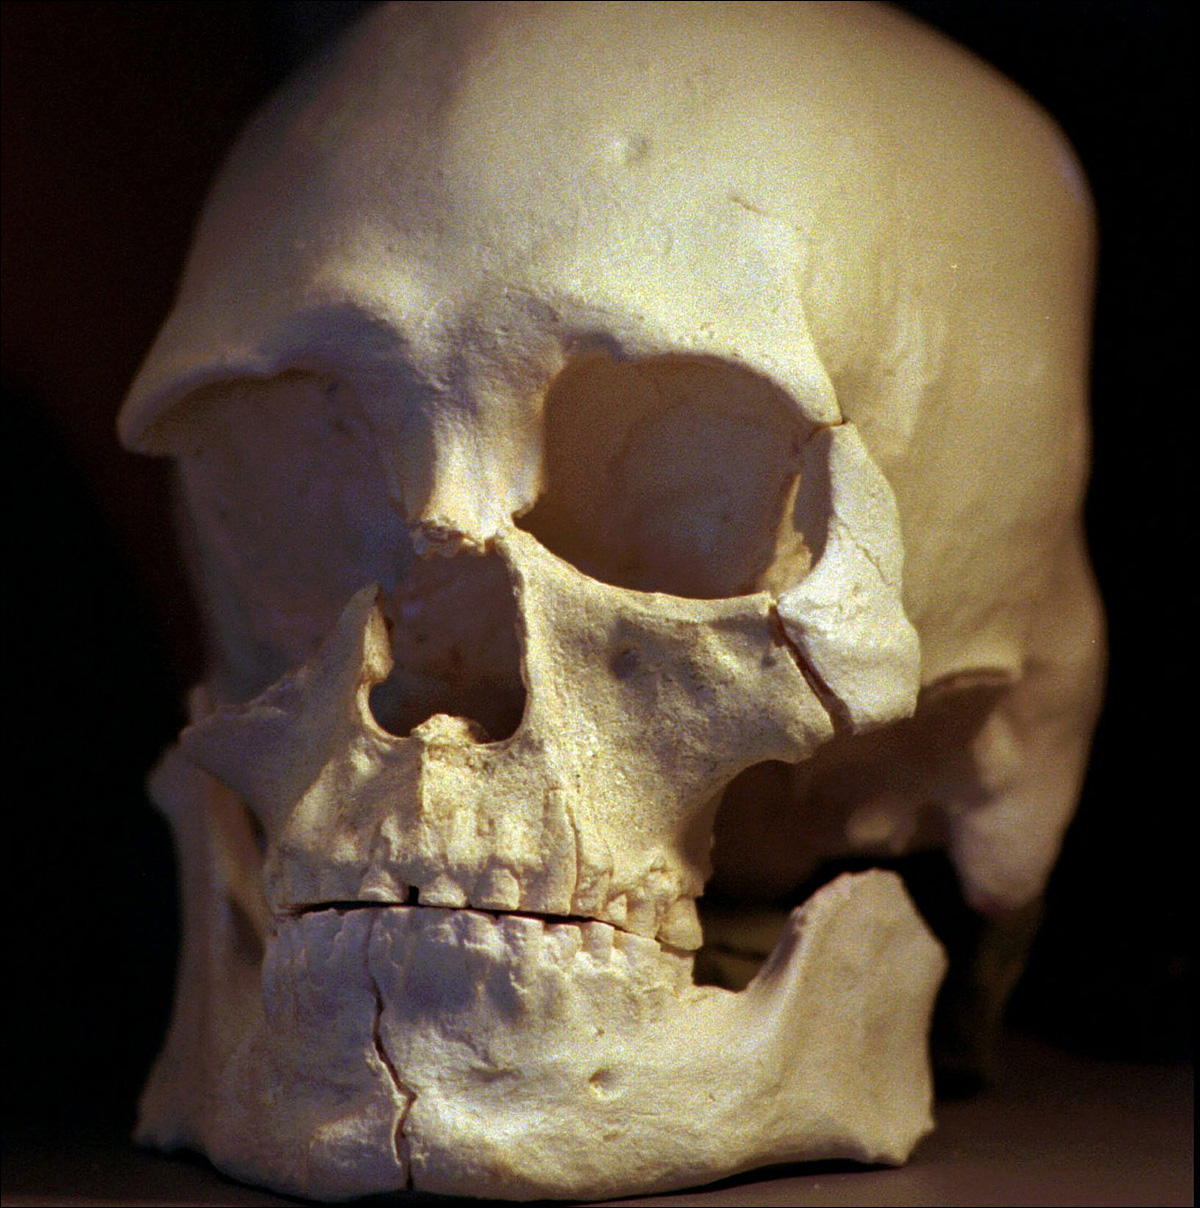 It was 20 years ago that the ancient skeleton known as Kennewick Man was discovered.